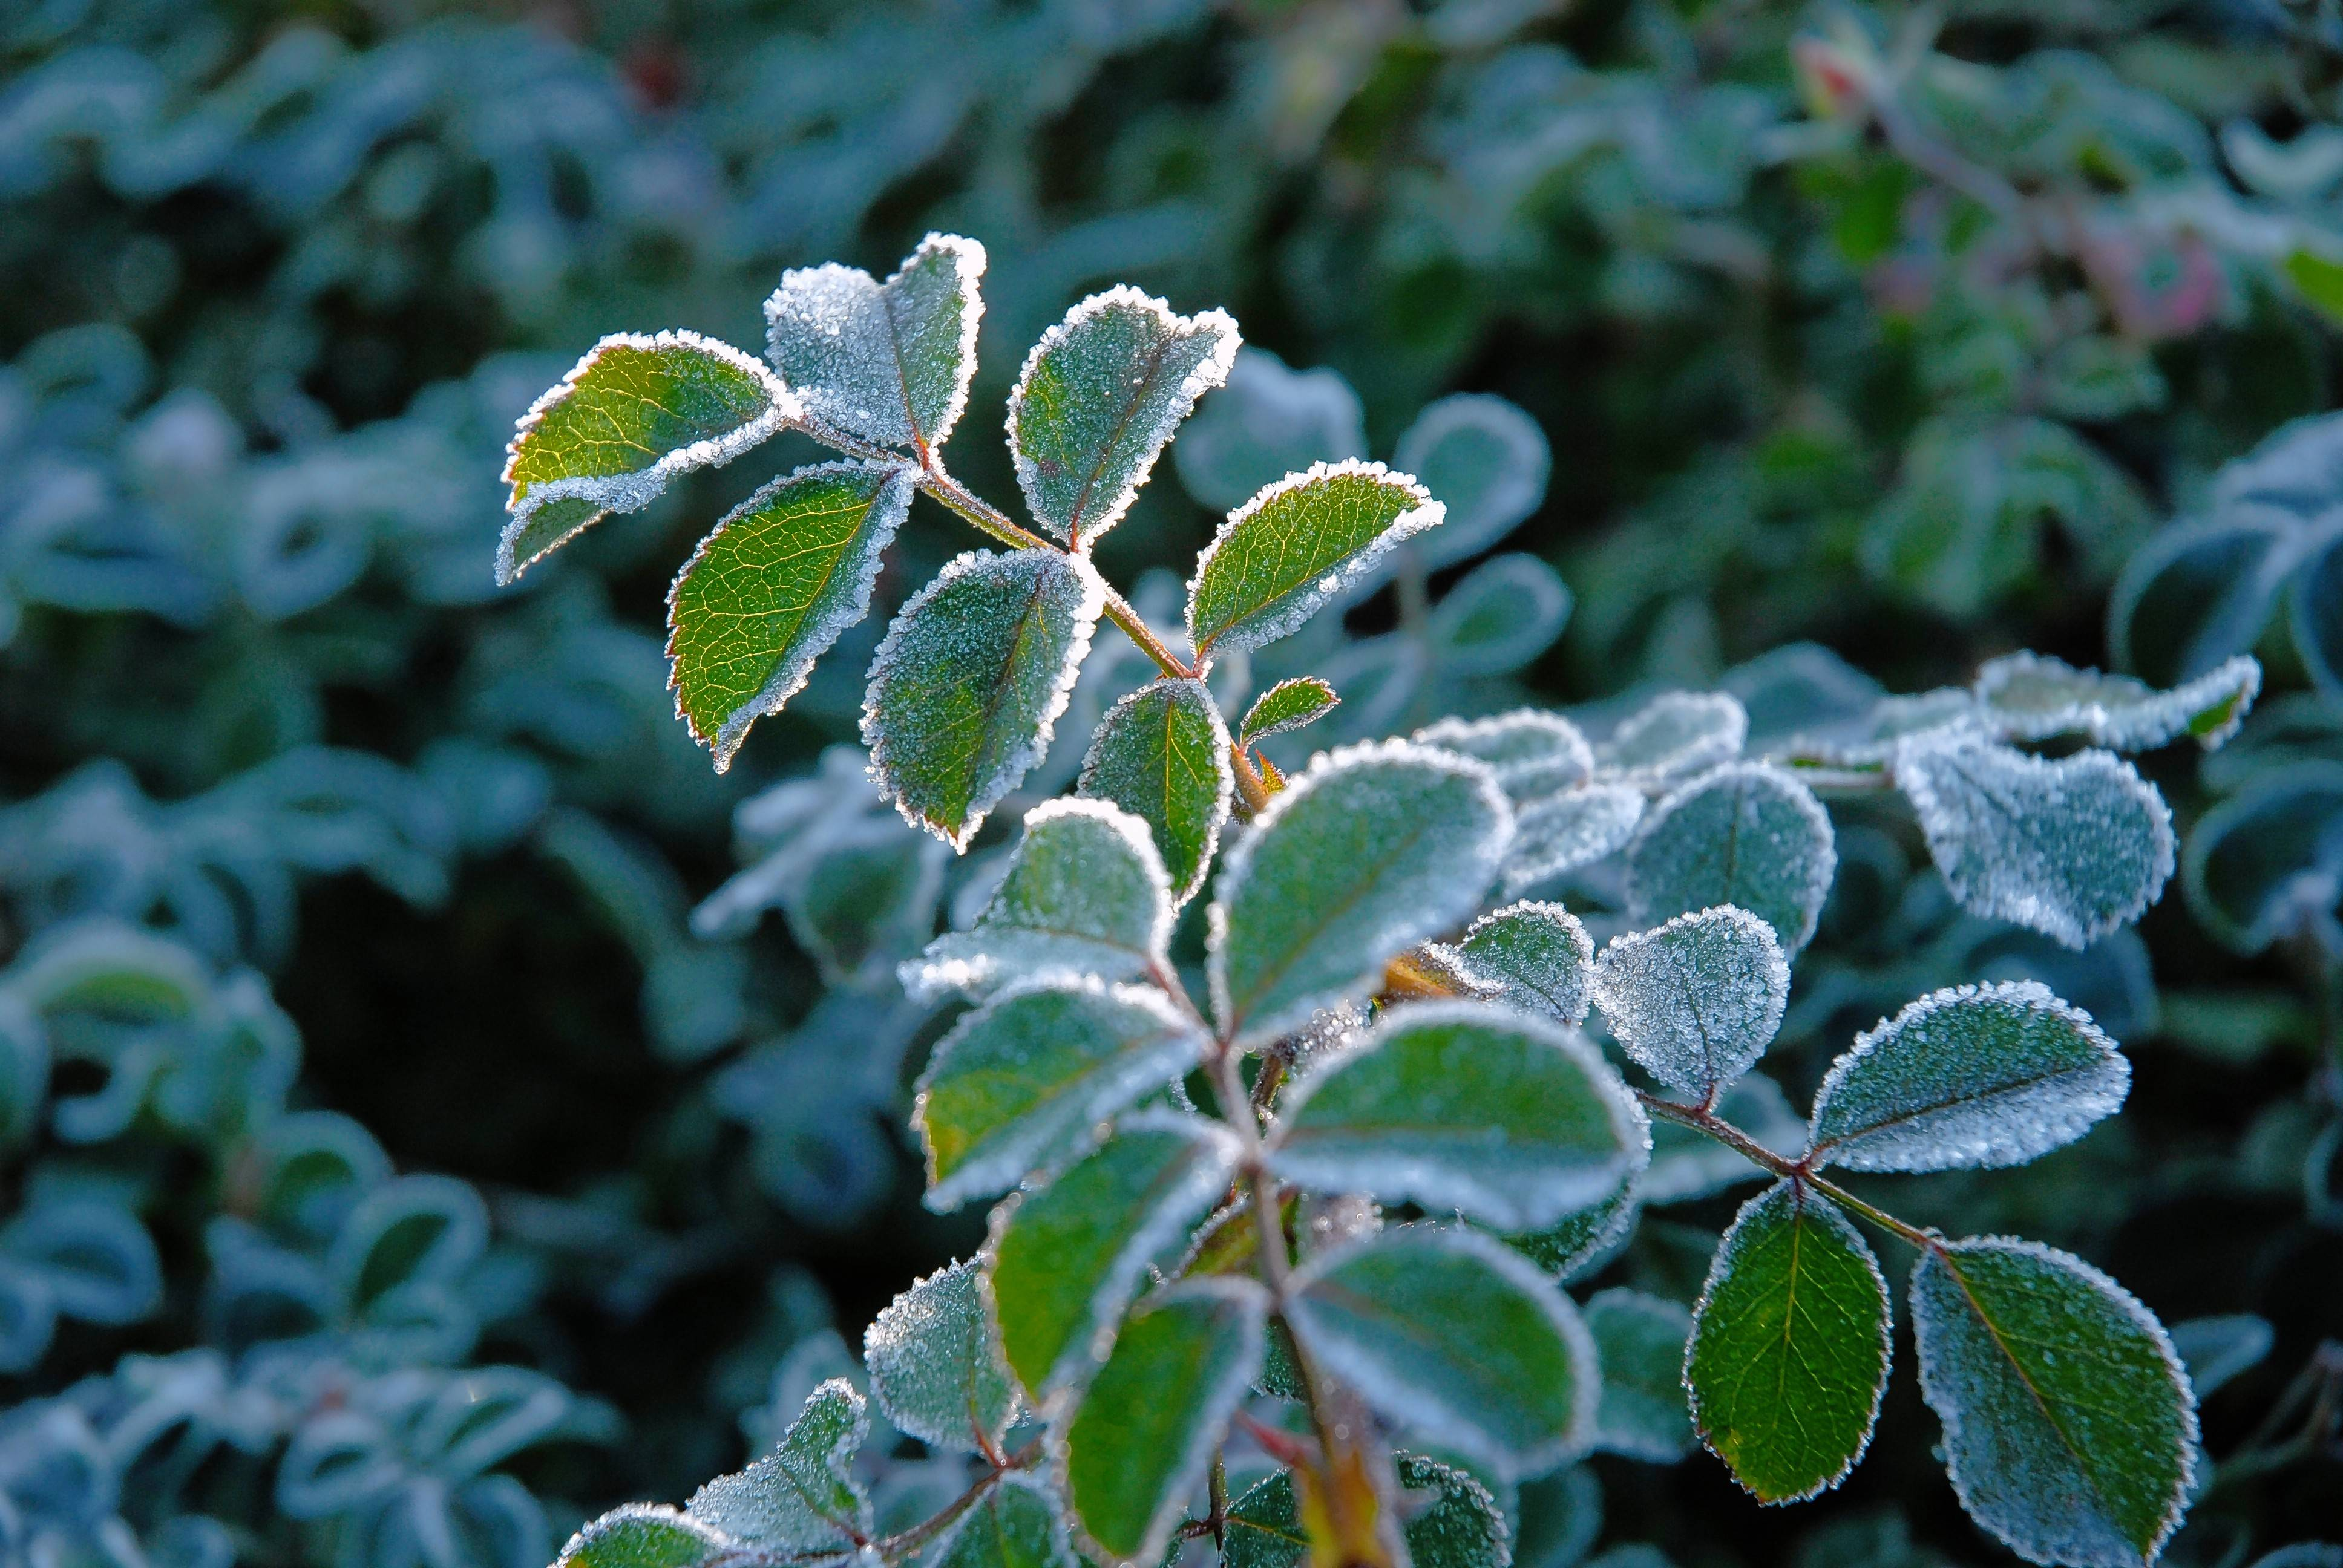 The telltale sign of winter's arrival is those cold mornings when frost forms on leaves and lawns.